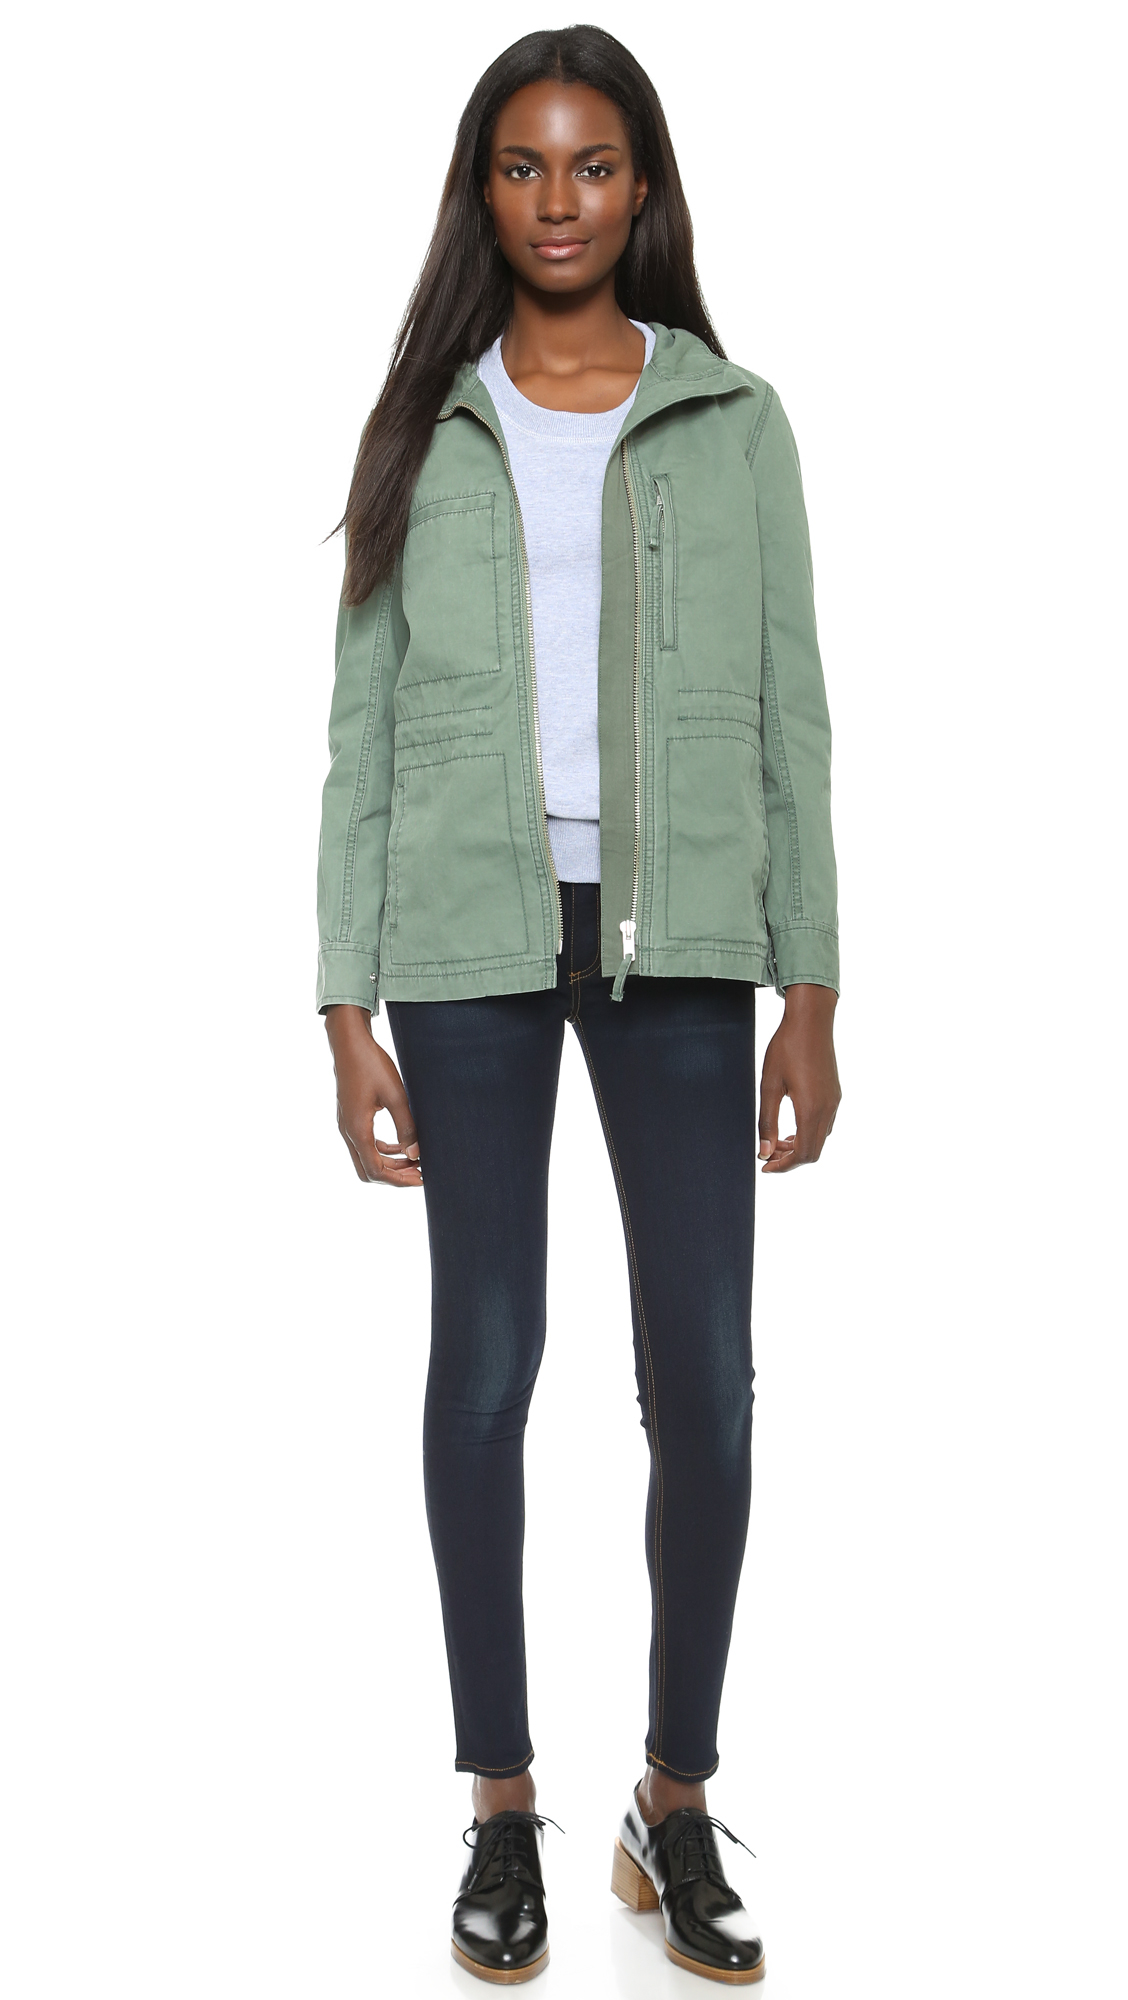 099286e4a56 Madewell Outbound Jacket - Meadow Green in Green